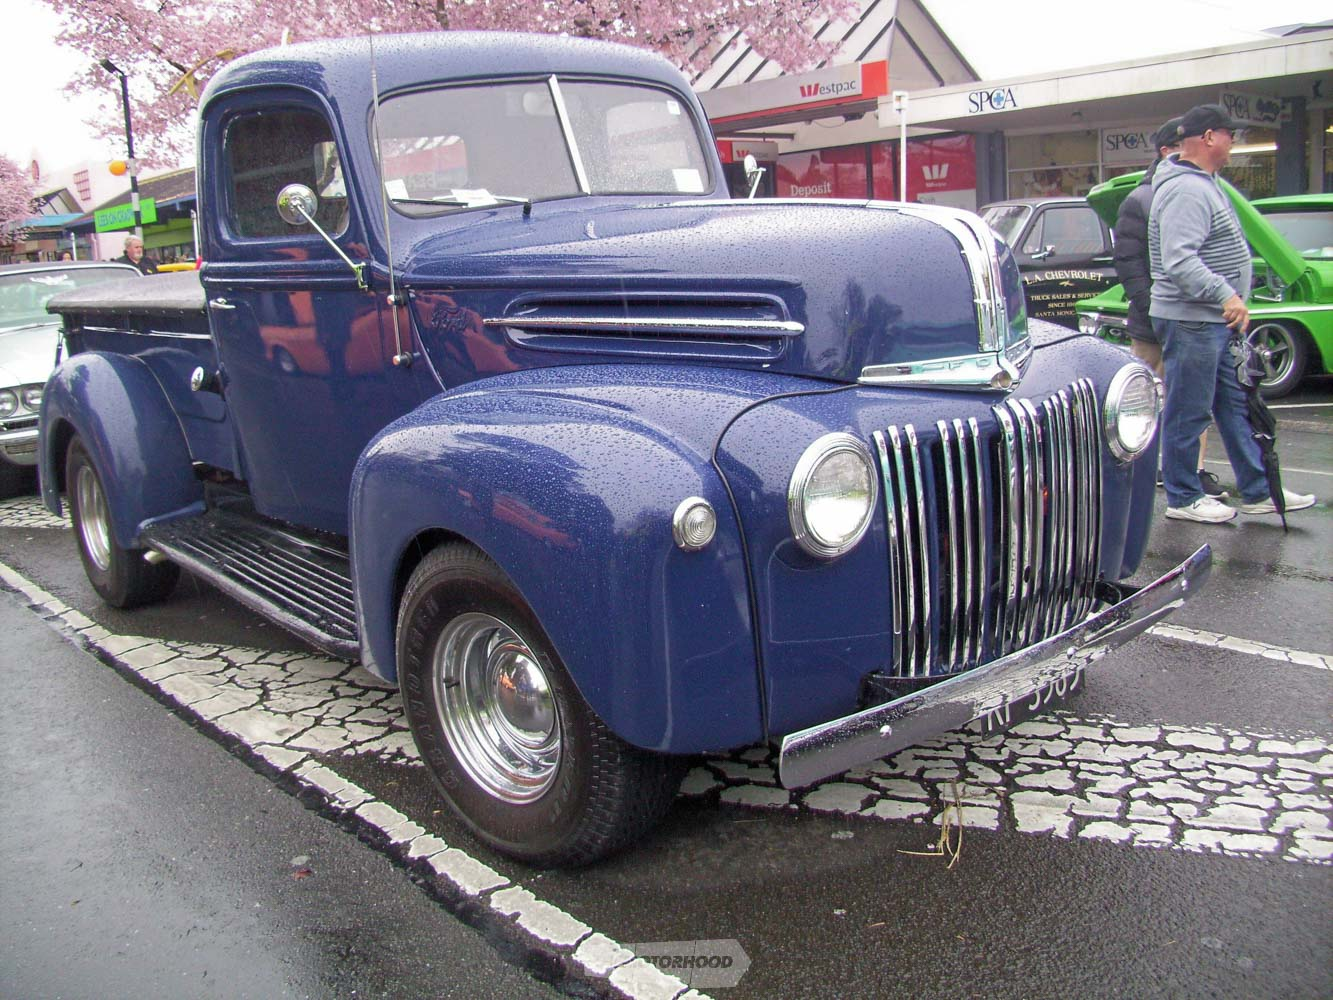 Kevin Goss from Rotorua drove across to show his blue 1947 Ford Pickup truck during  the day.jpg